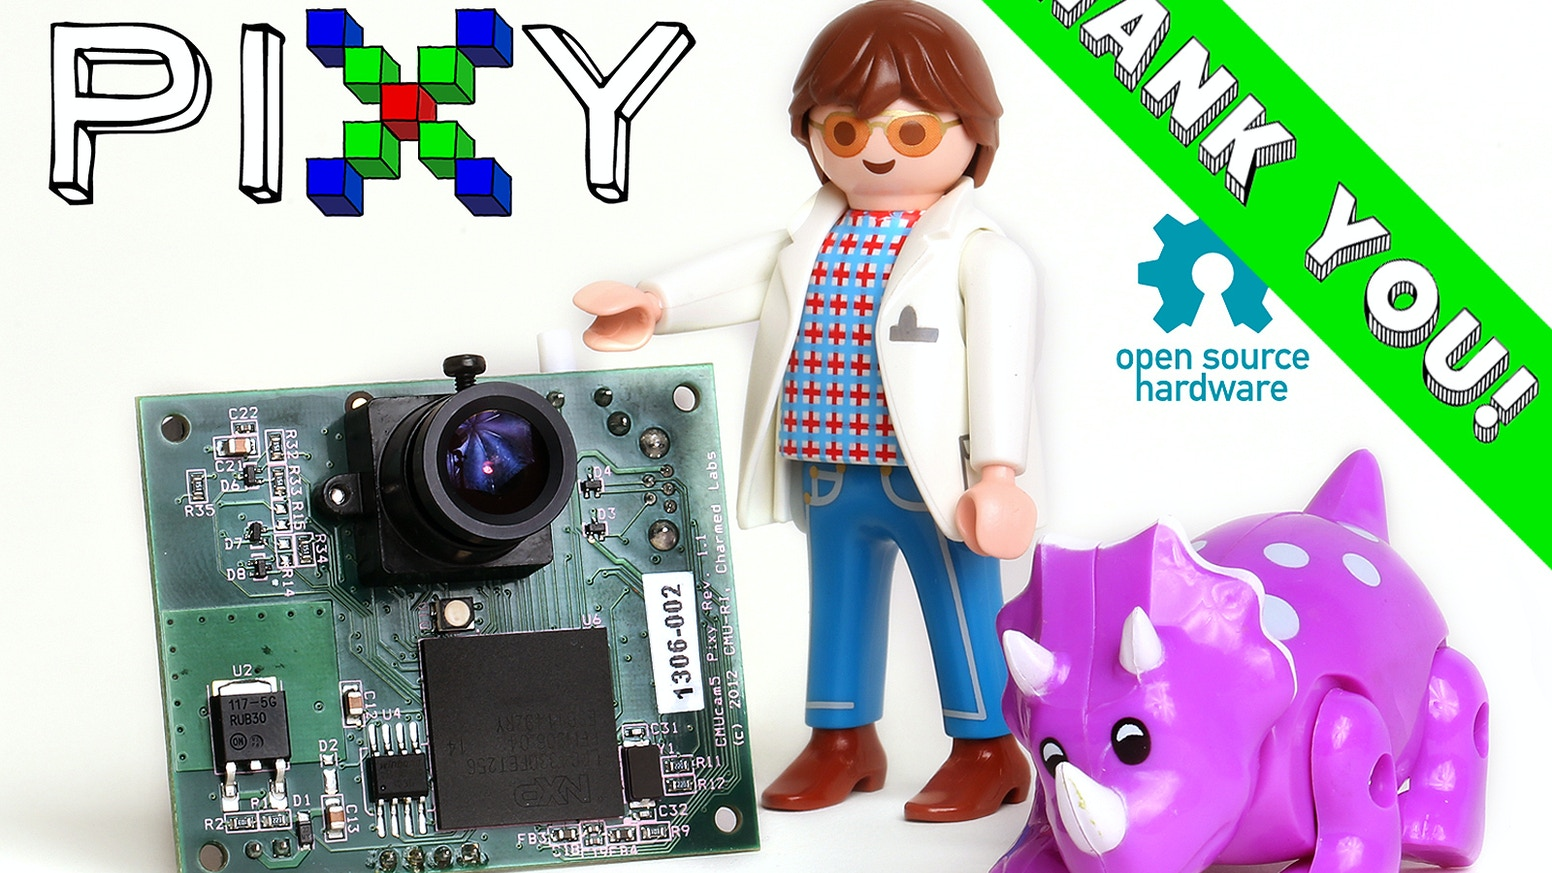 Pixy cmucam5 a fast easy to use vision sensor by charmed labs pixy is a fast vision sensor you can quickly teach to find objects and it connects directly to arduino and other controllers fandeluxe Gallery